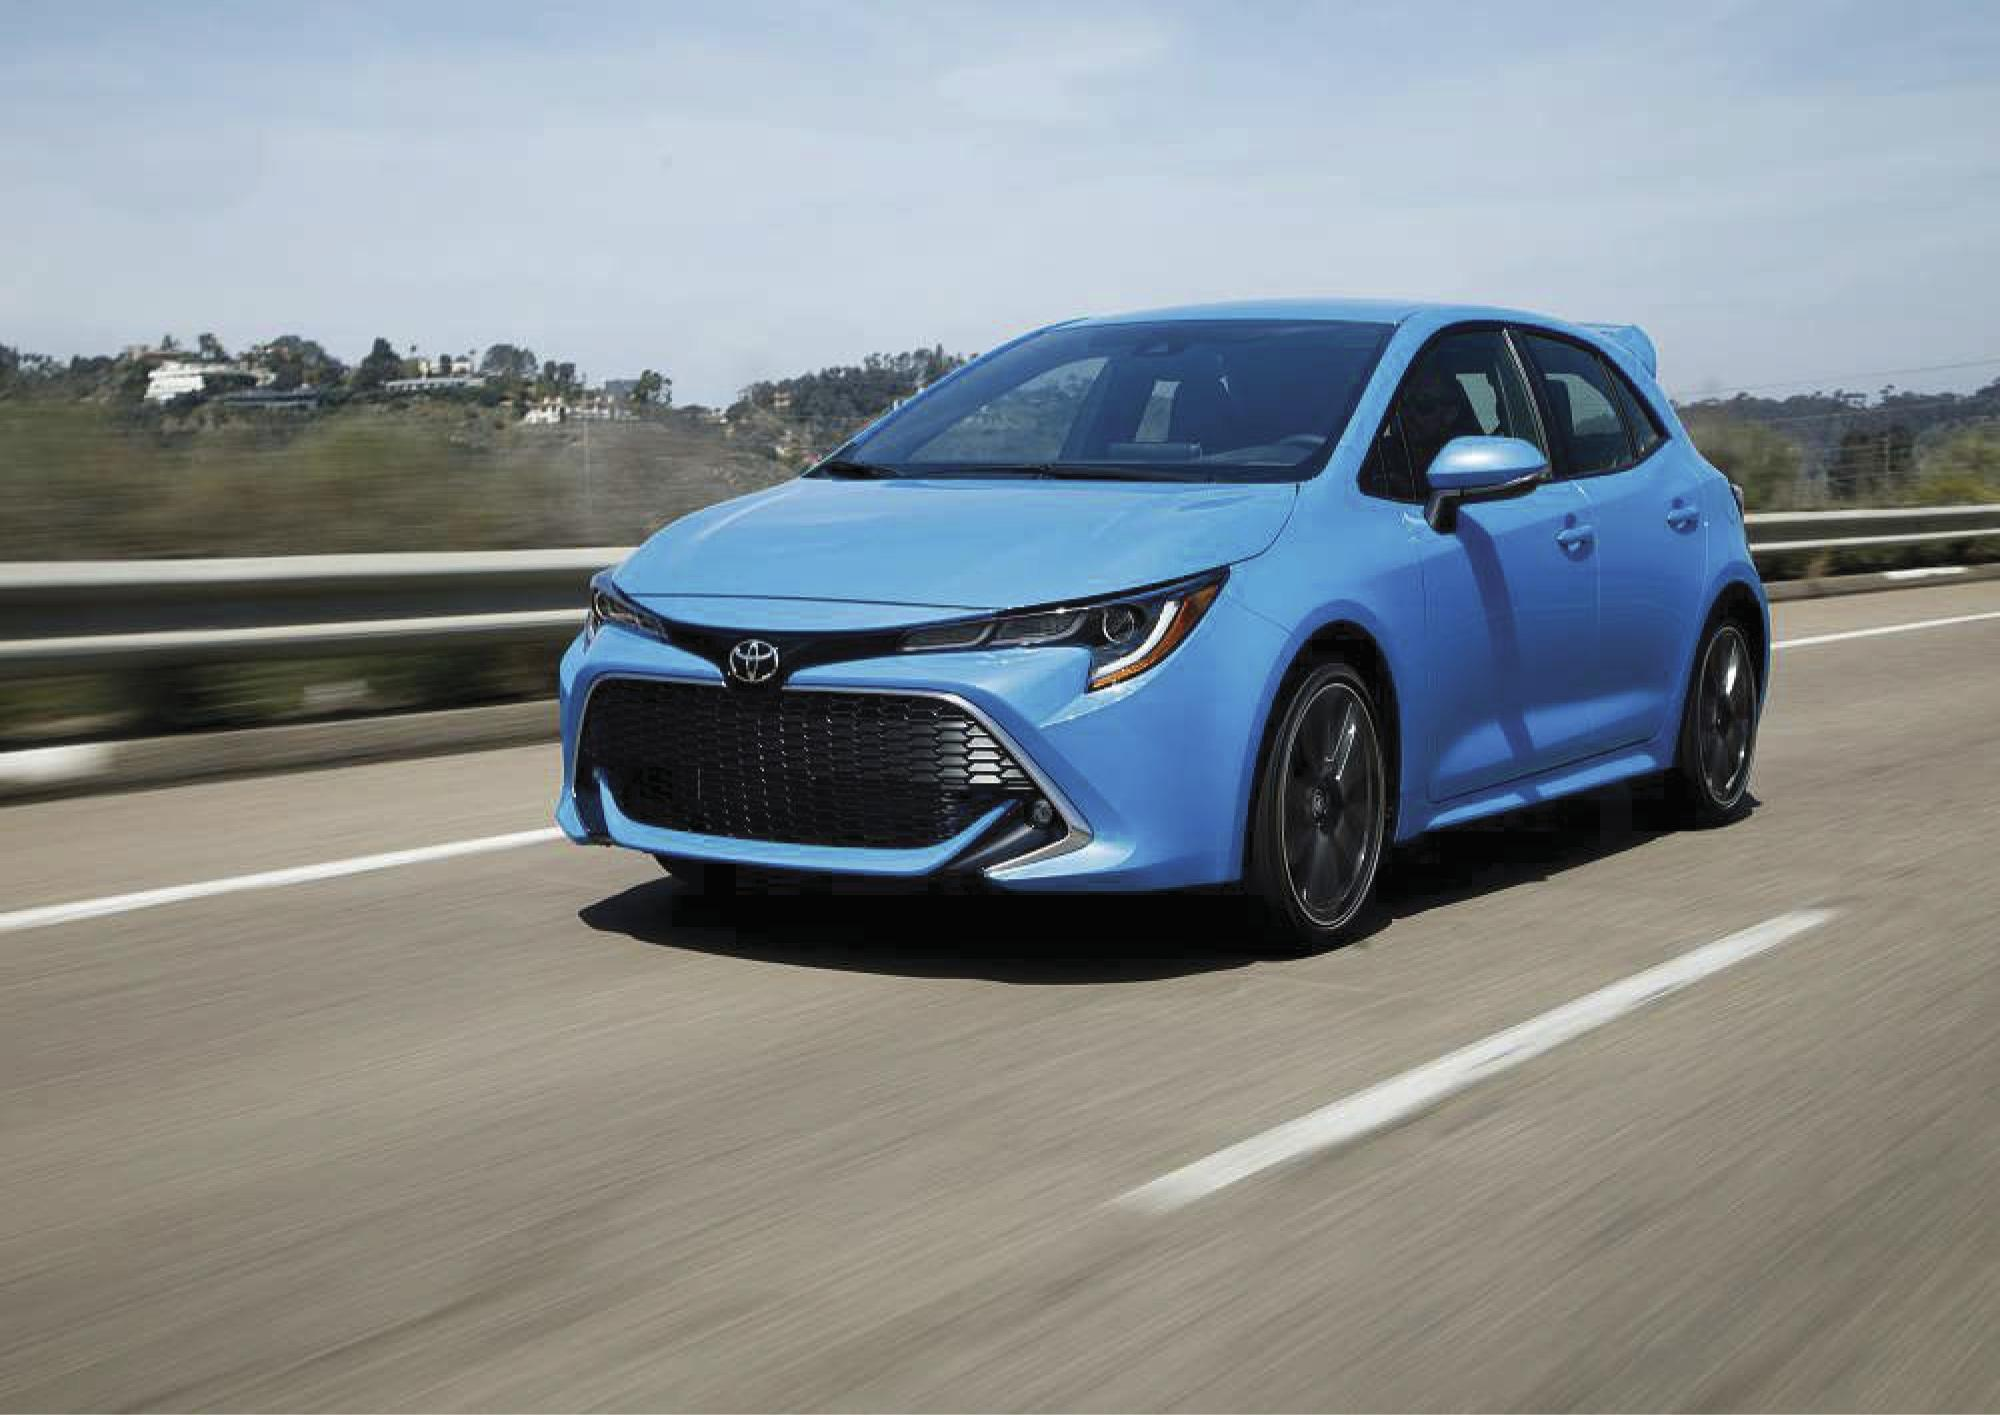 2019 Toyota Corolla Hatchback is an entertaining runabout